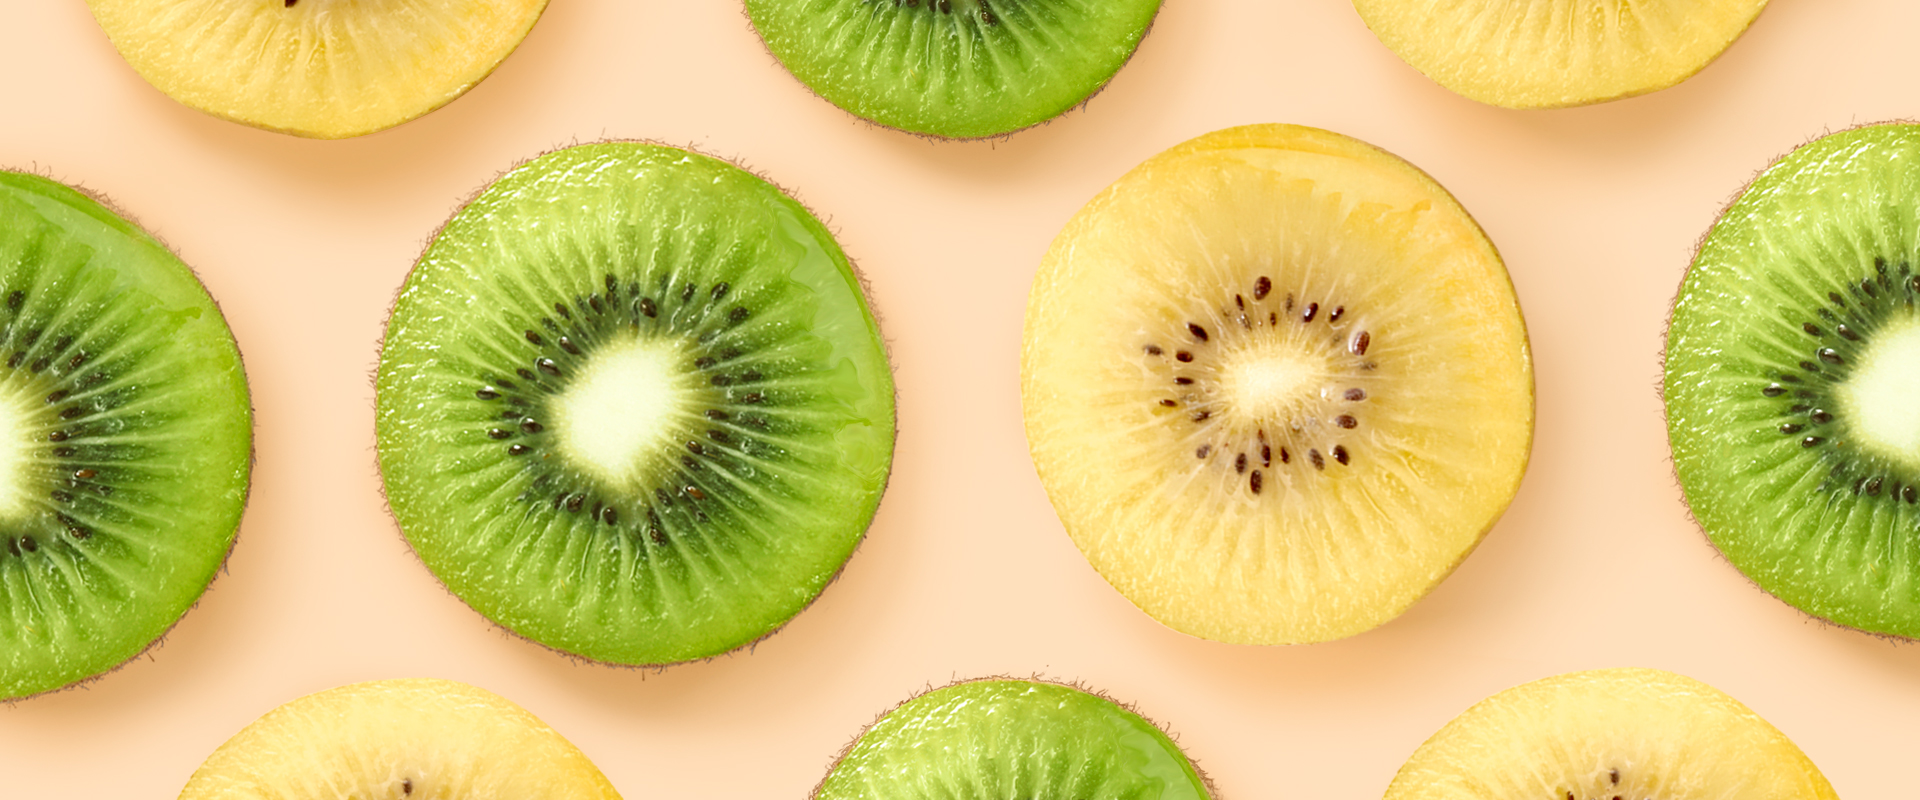 our-range-of-kiwis